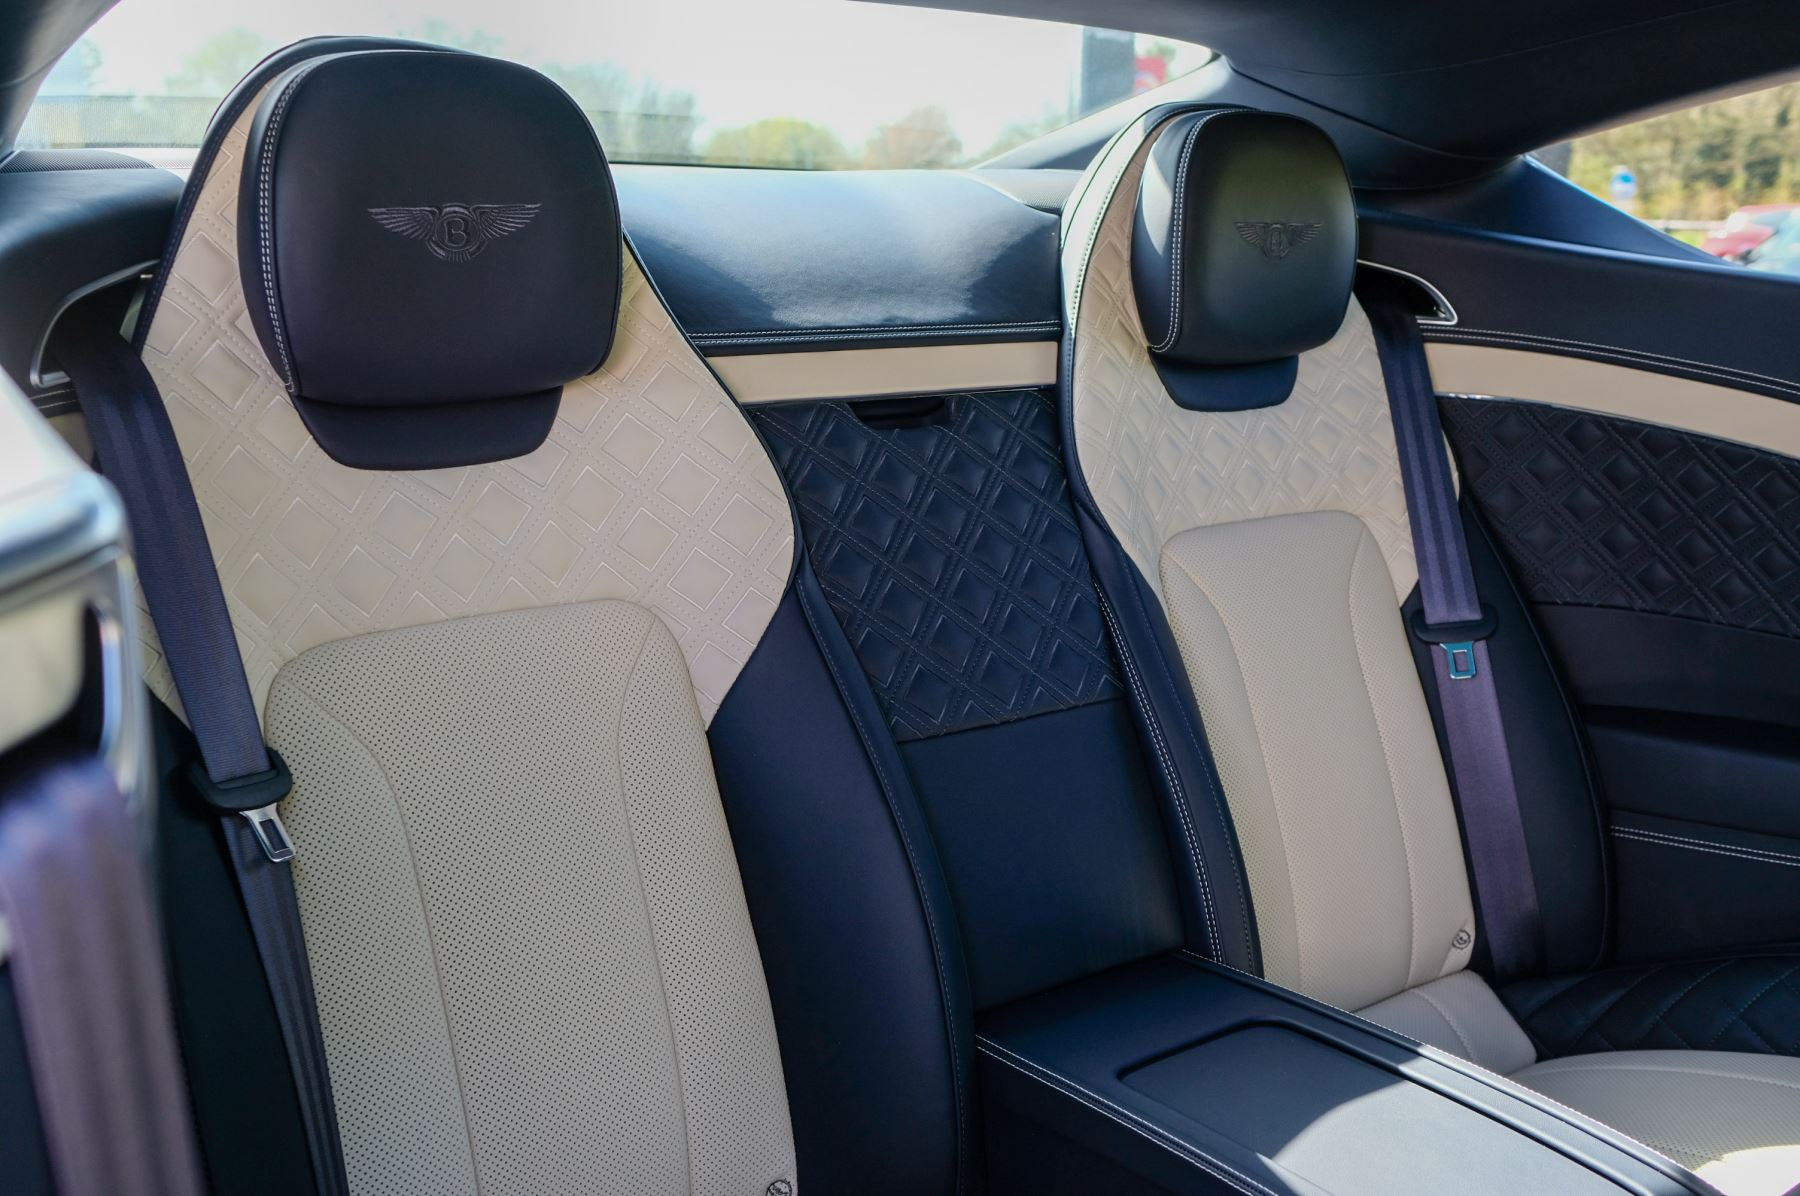 Bentley Continental GT 4.0 V8 Mulliner Edition 2dr Auto - City Specification - Panoramic Glass Roof image 14